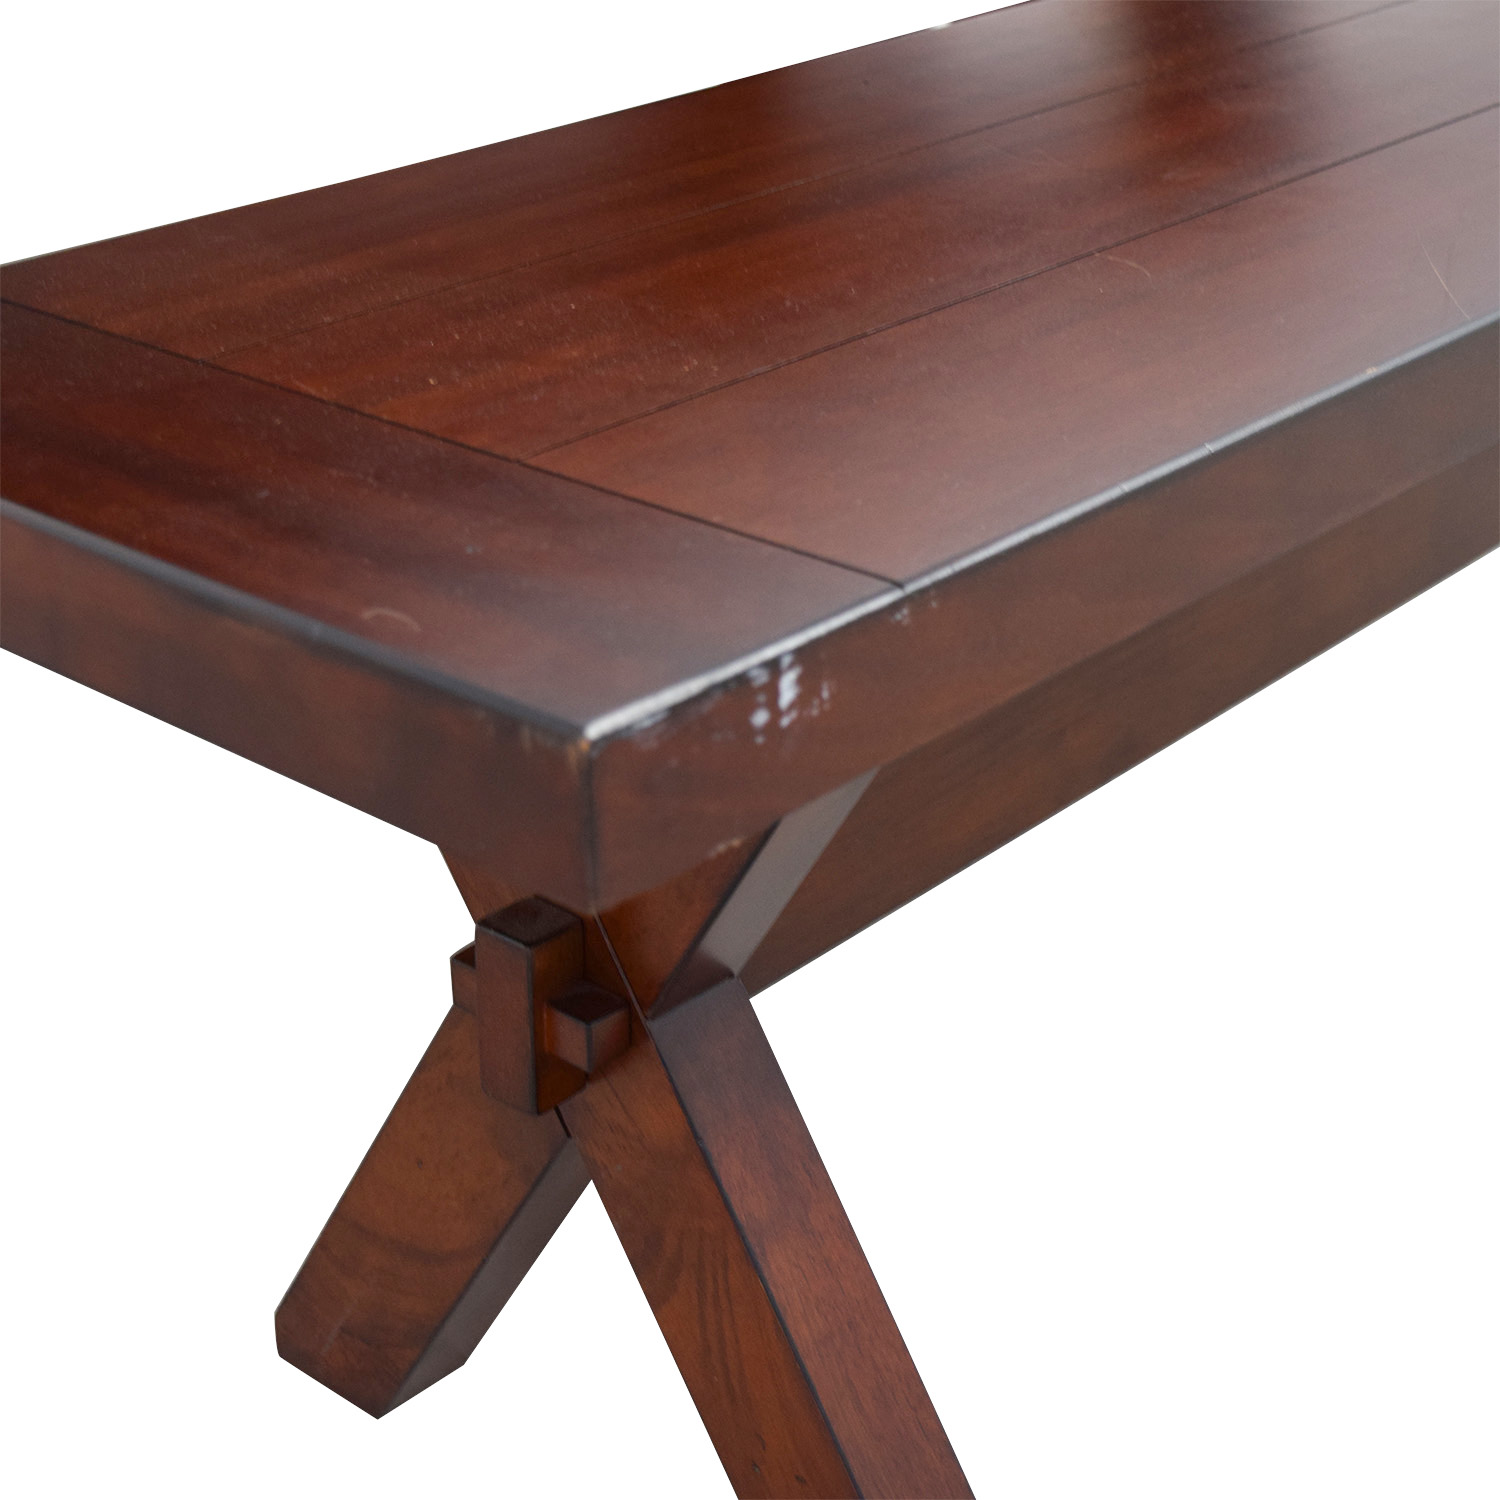 Pleasant 90 Off Pier 1 Pier 1 Imports Nolan Wood Dining Table With Bench Tables Ocoug Best Dining Table And Chair Ideas Images Ocougorg